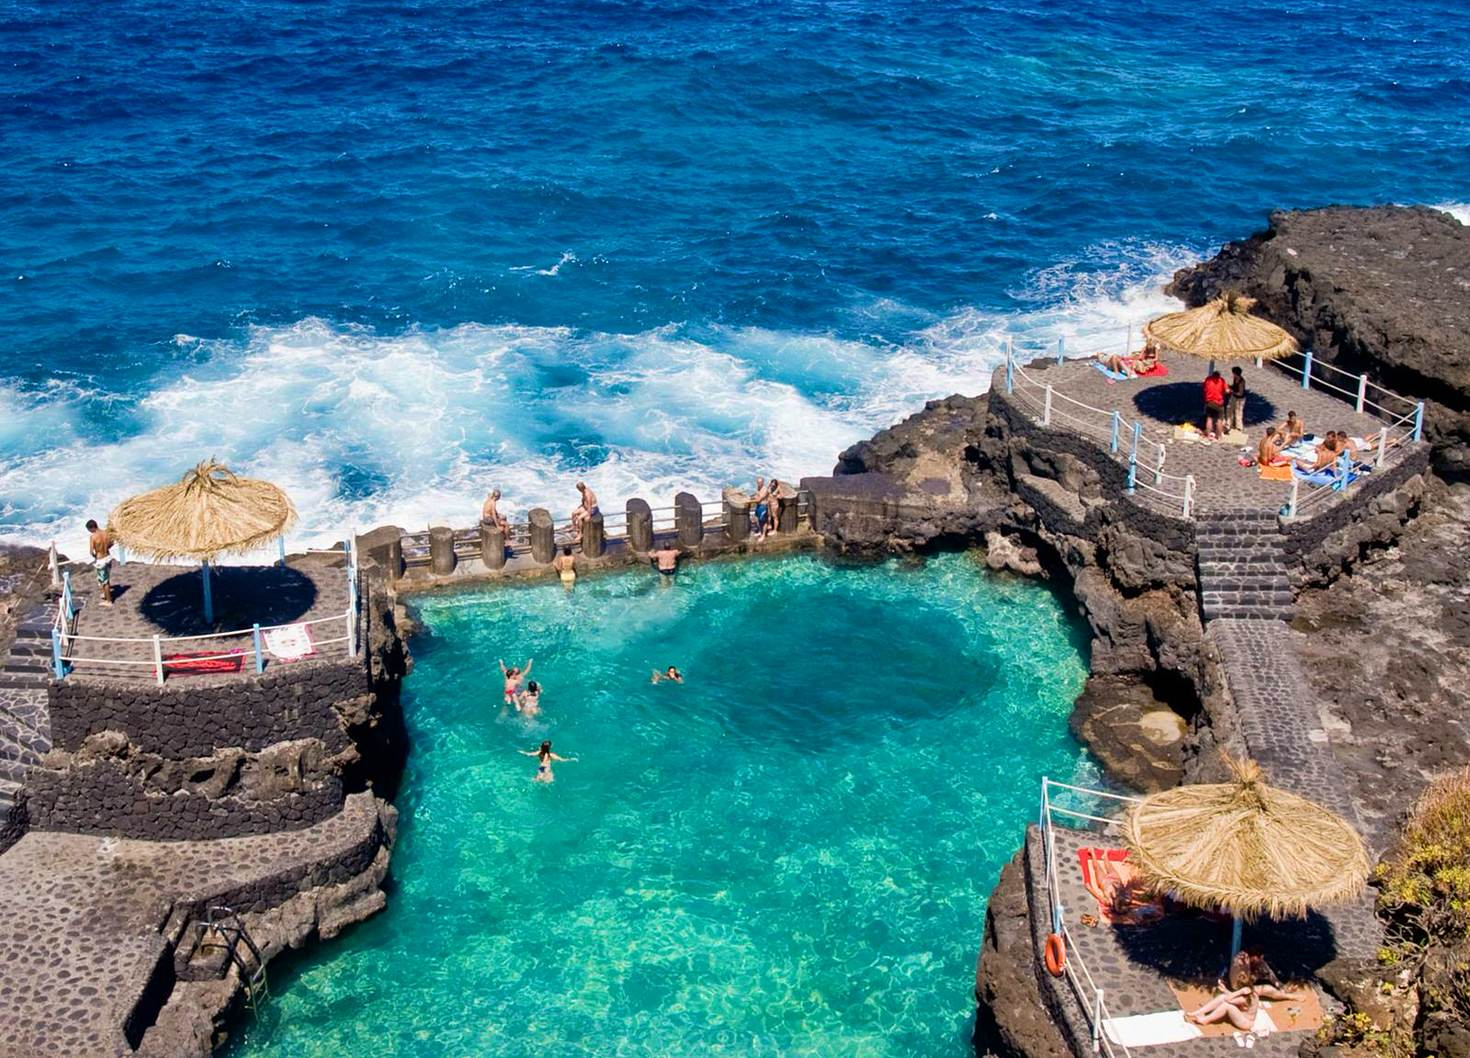 Piscinas Charco Azul © Lovethief Photography / Getty Images